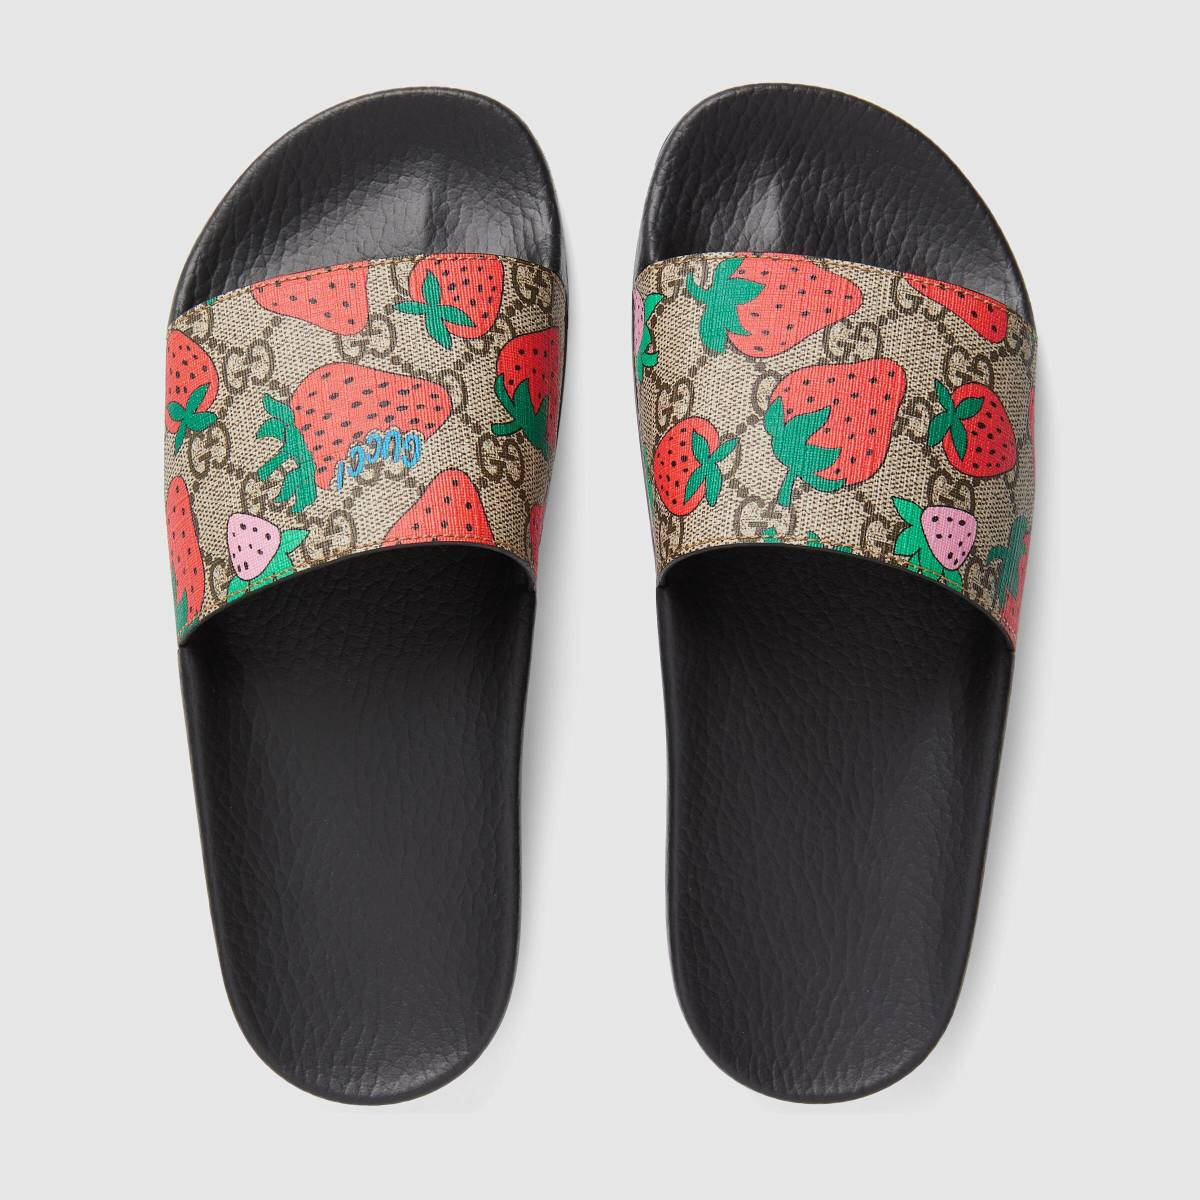 23f66ec32 GG Gucci strawberry slide sandal, $310, available here. Photo: Courtesy of  Gucci